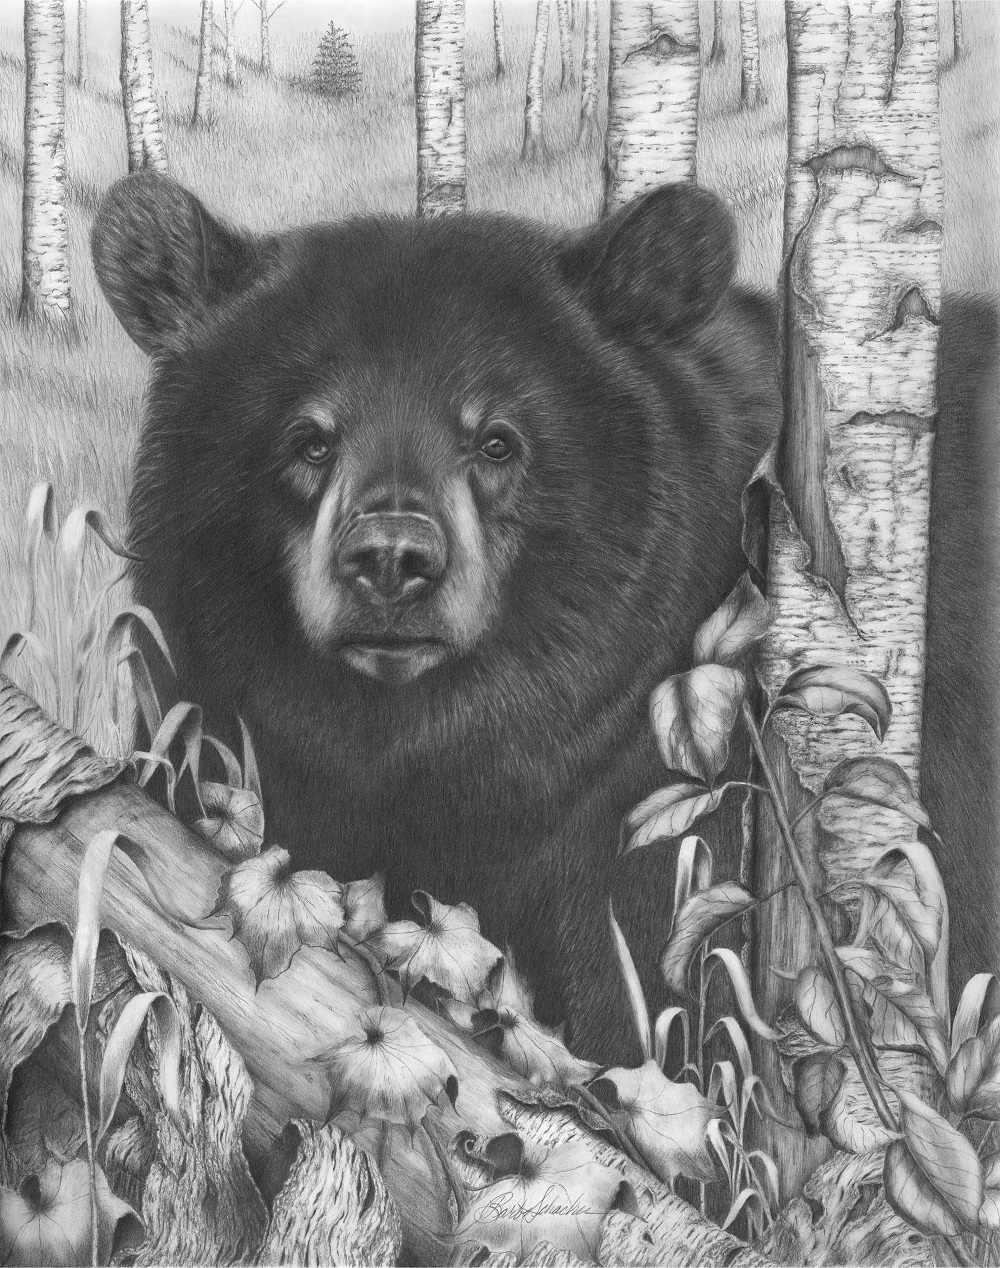 black bear drawings black bear drawing by scott woyak drawings bear black